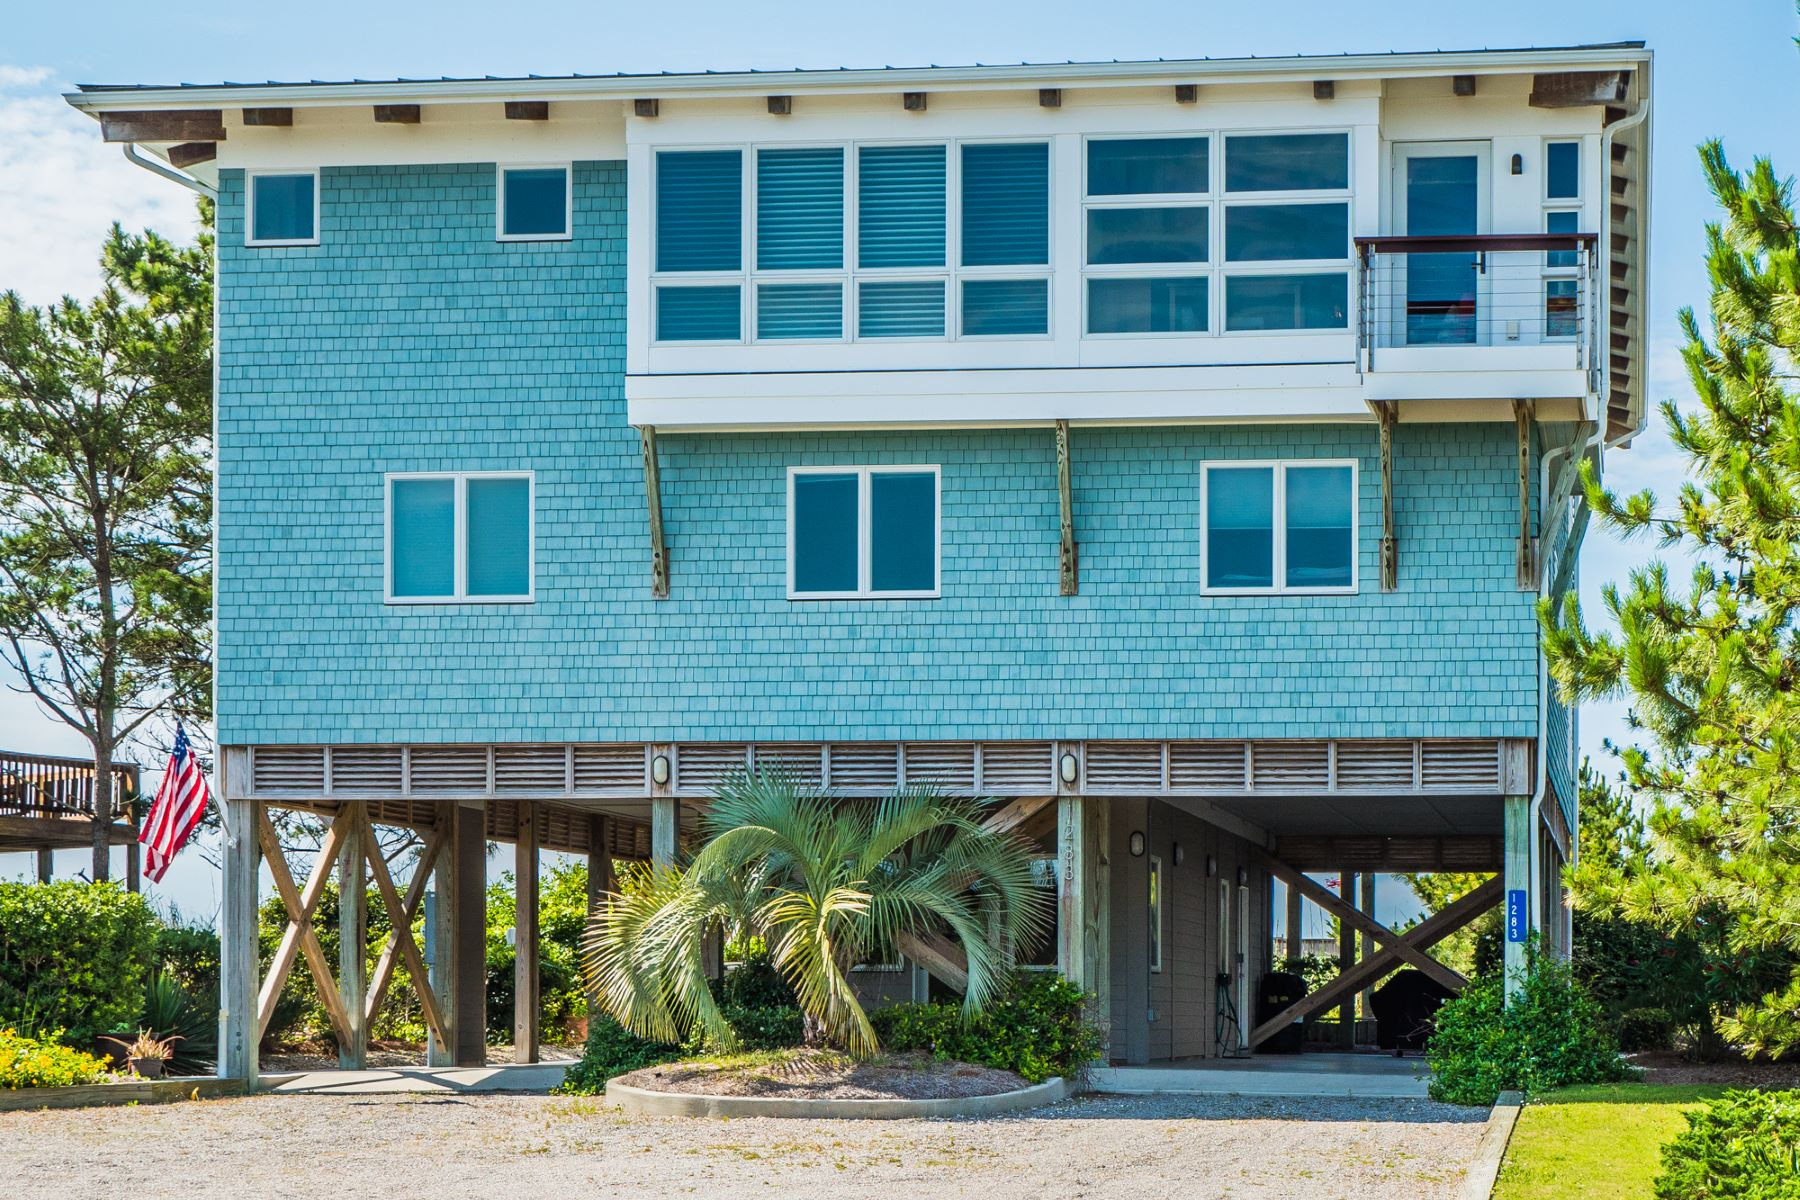 Single Family Home for Sale at Oceanfront Masterpiece in Gated Community 1283 Ocean Boulevard W Holden Beach, North Carolina 28462 United States